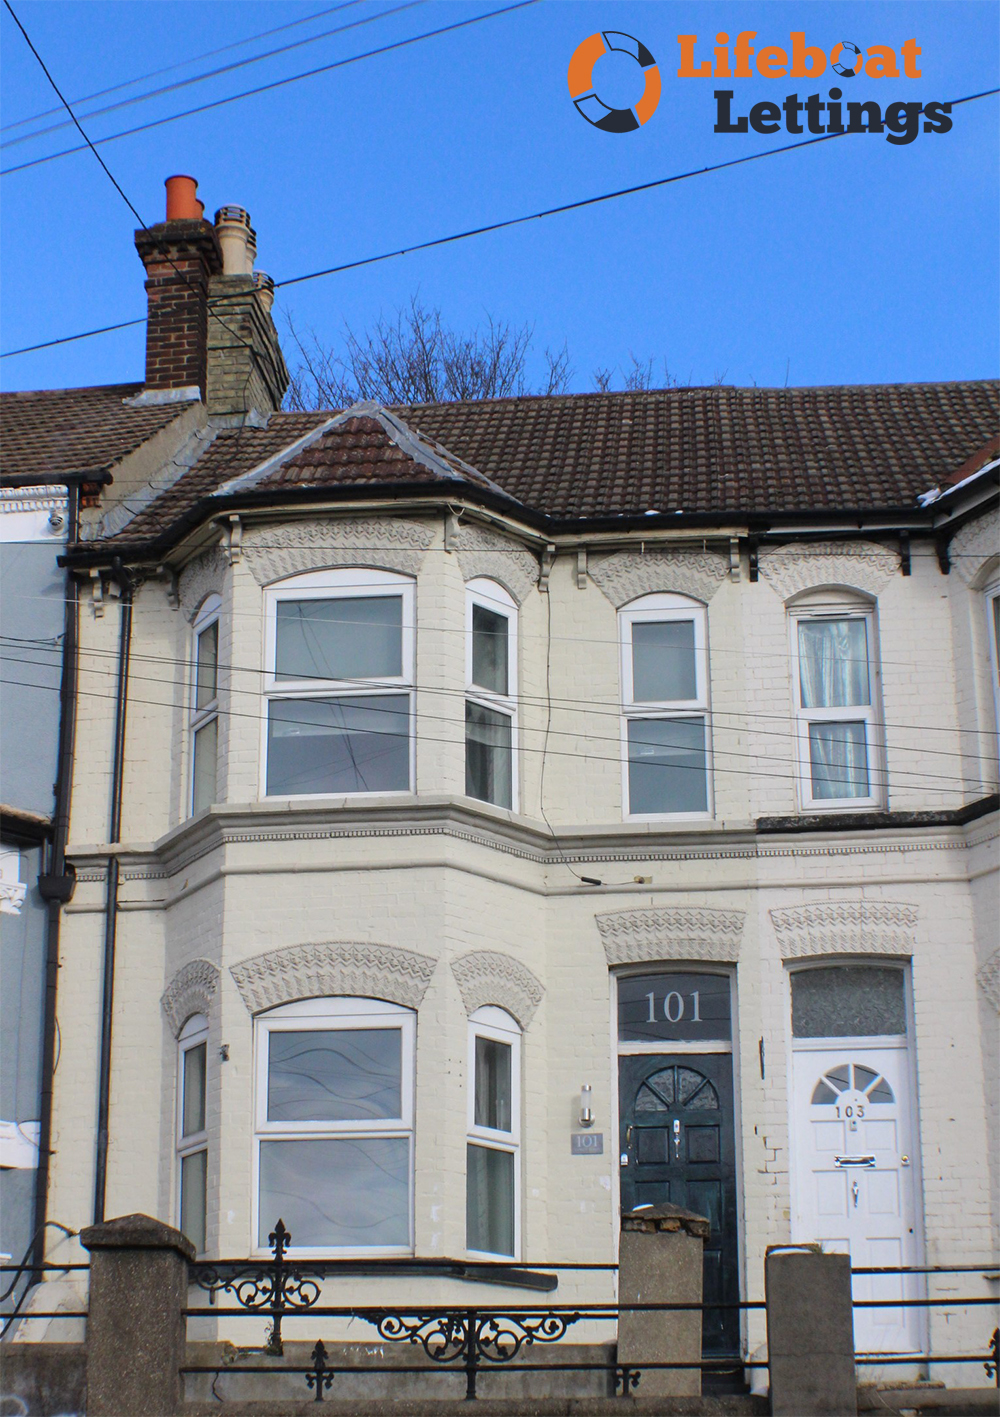 Luton Road Chatham Lifeboat Lettings